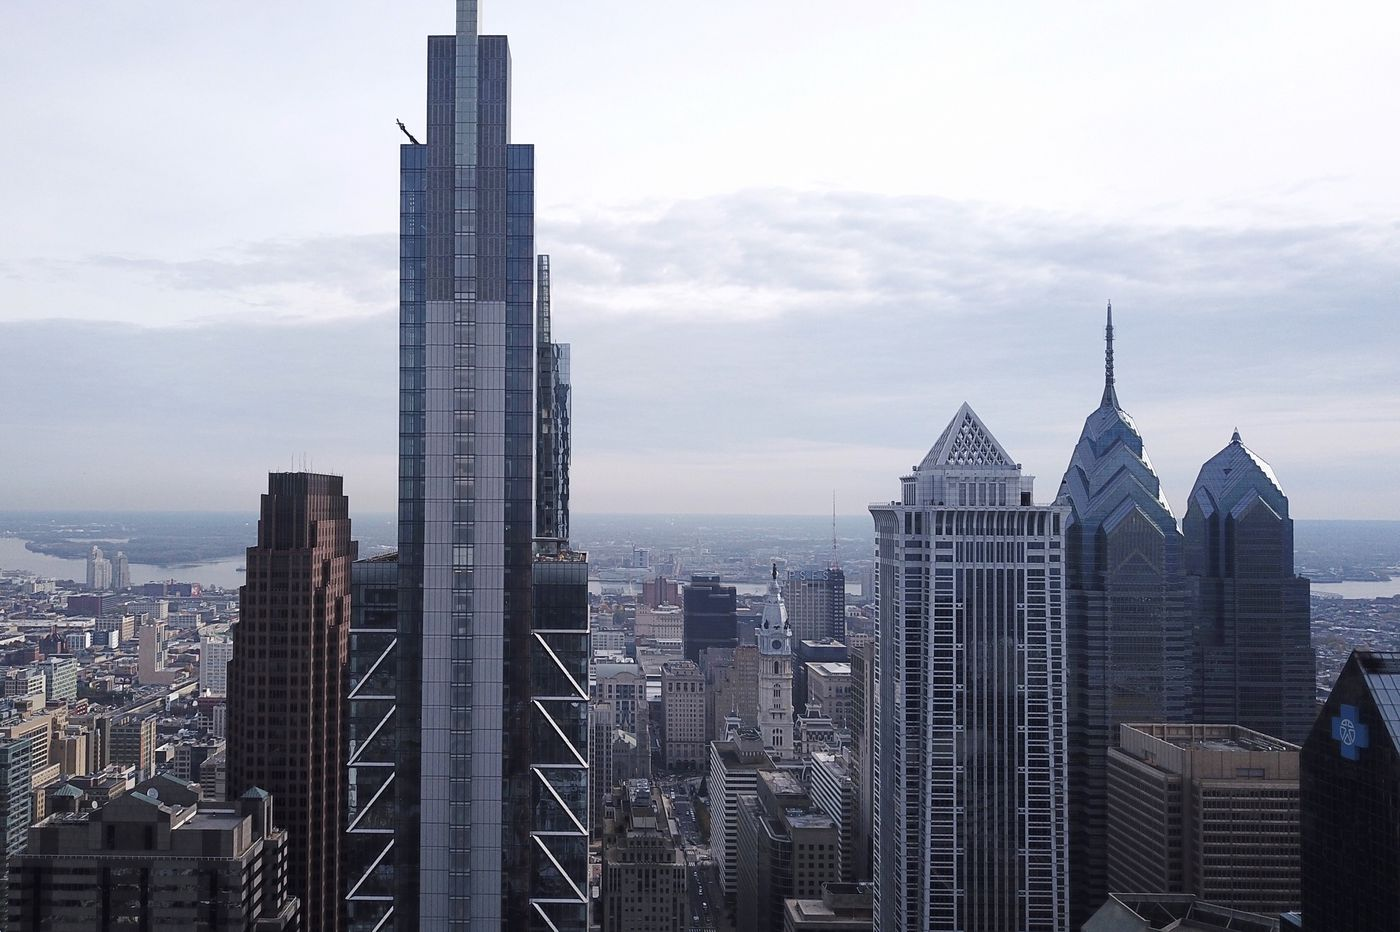 Philadelphia's skyline rising: From a colonial church spire to glassy blue Comcast 2